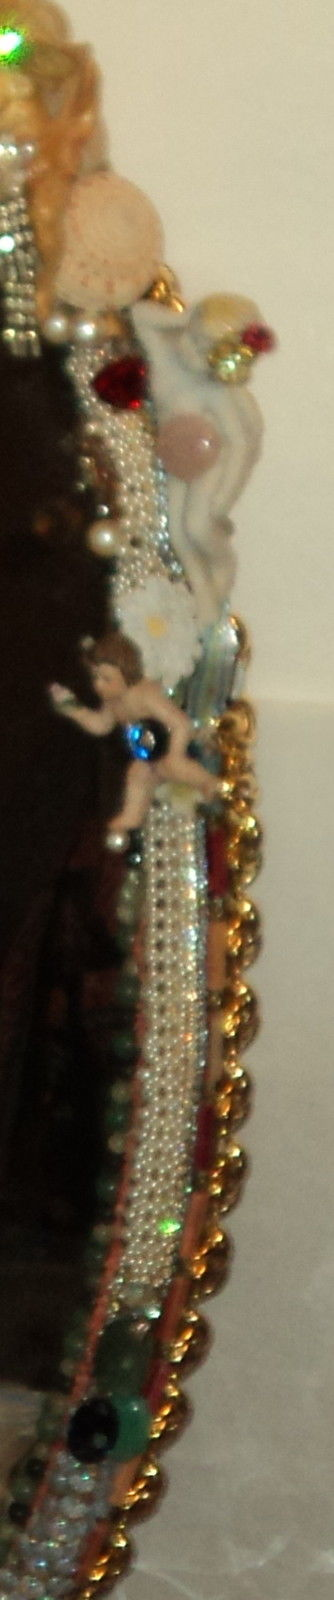 "3' 4"" tall oval Magical Jeweled Mirror, insanely encrusted with cherubs, angels, jewels, pearls, and more by fashion jewelry designer Wendy Gell. Detail shot #5"